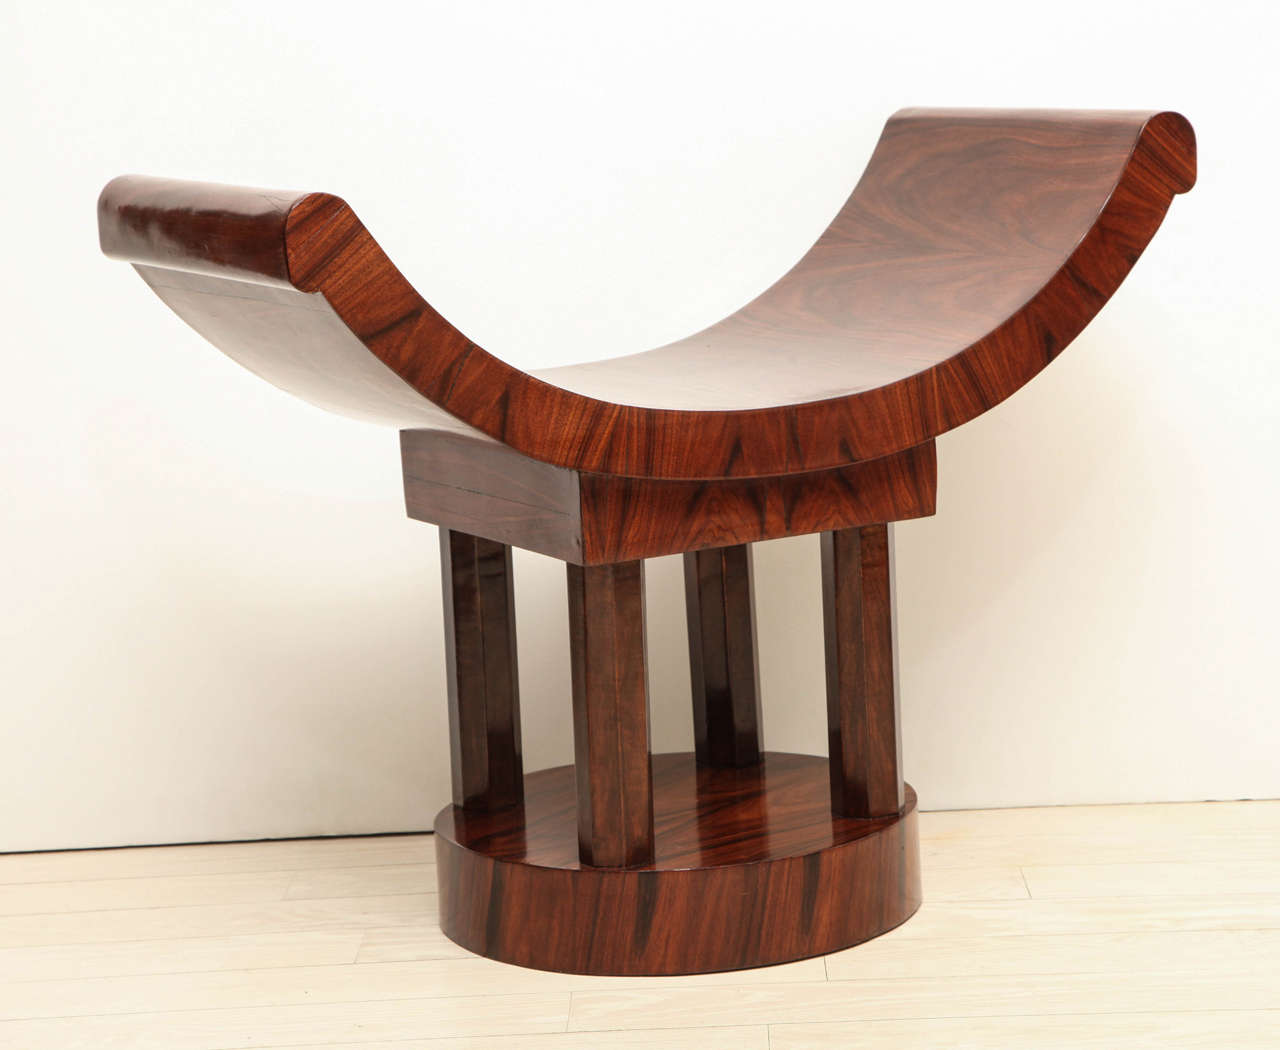 French Art Deco Wood Bench With Curved Seat Circa 1930s At 1stdibs